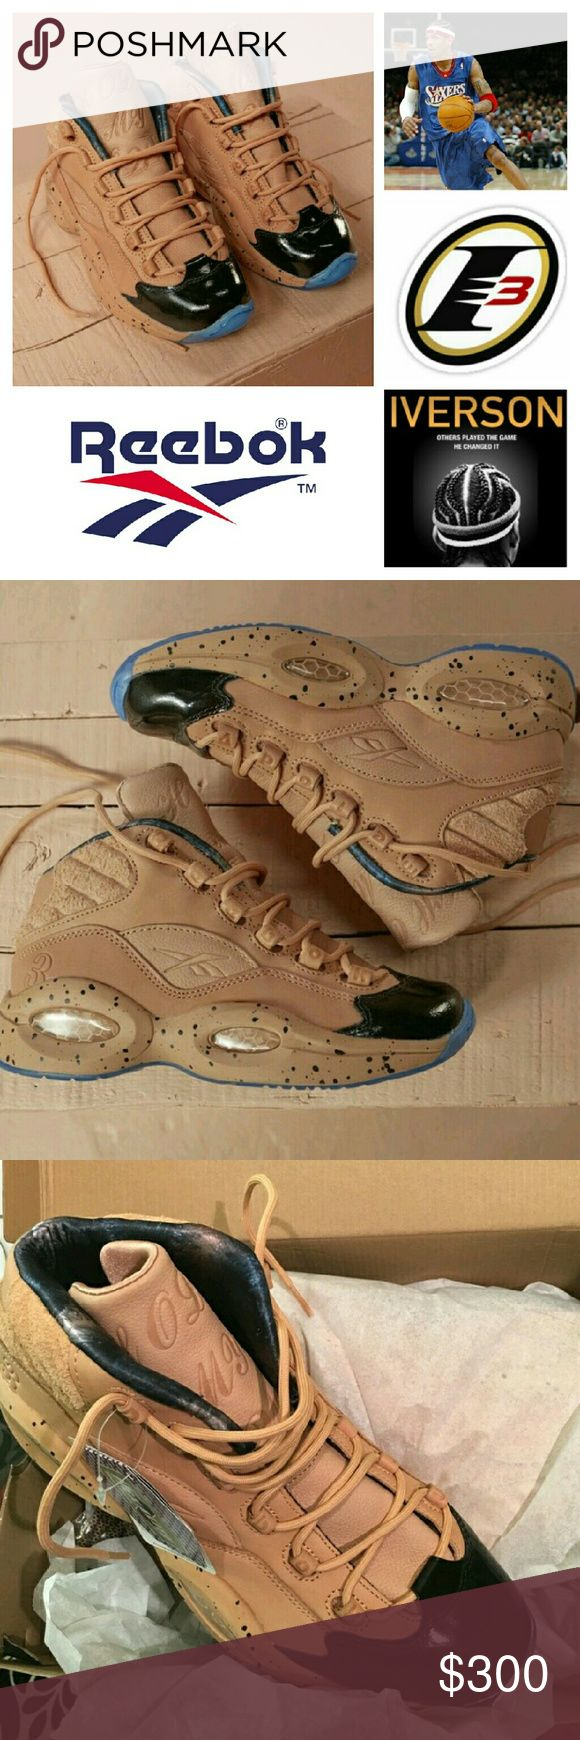 Allen Iverson x Mol Question? Limited Edition G Jg CNN nk Reebok Shoes Sneakers